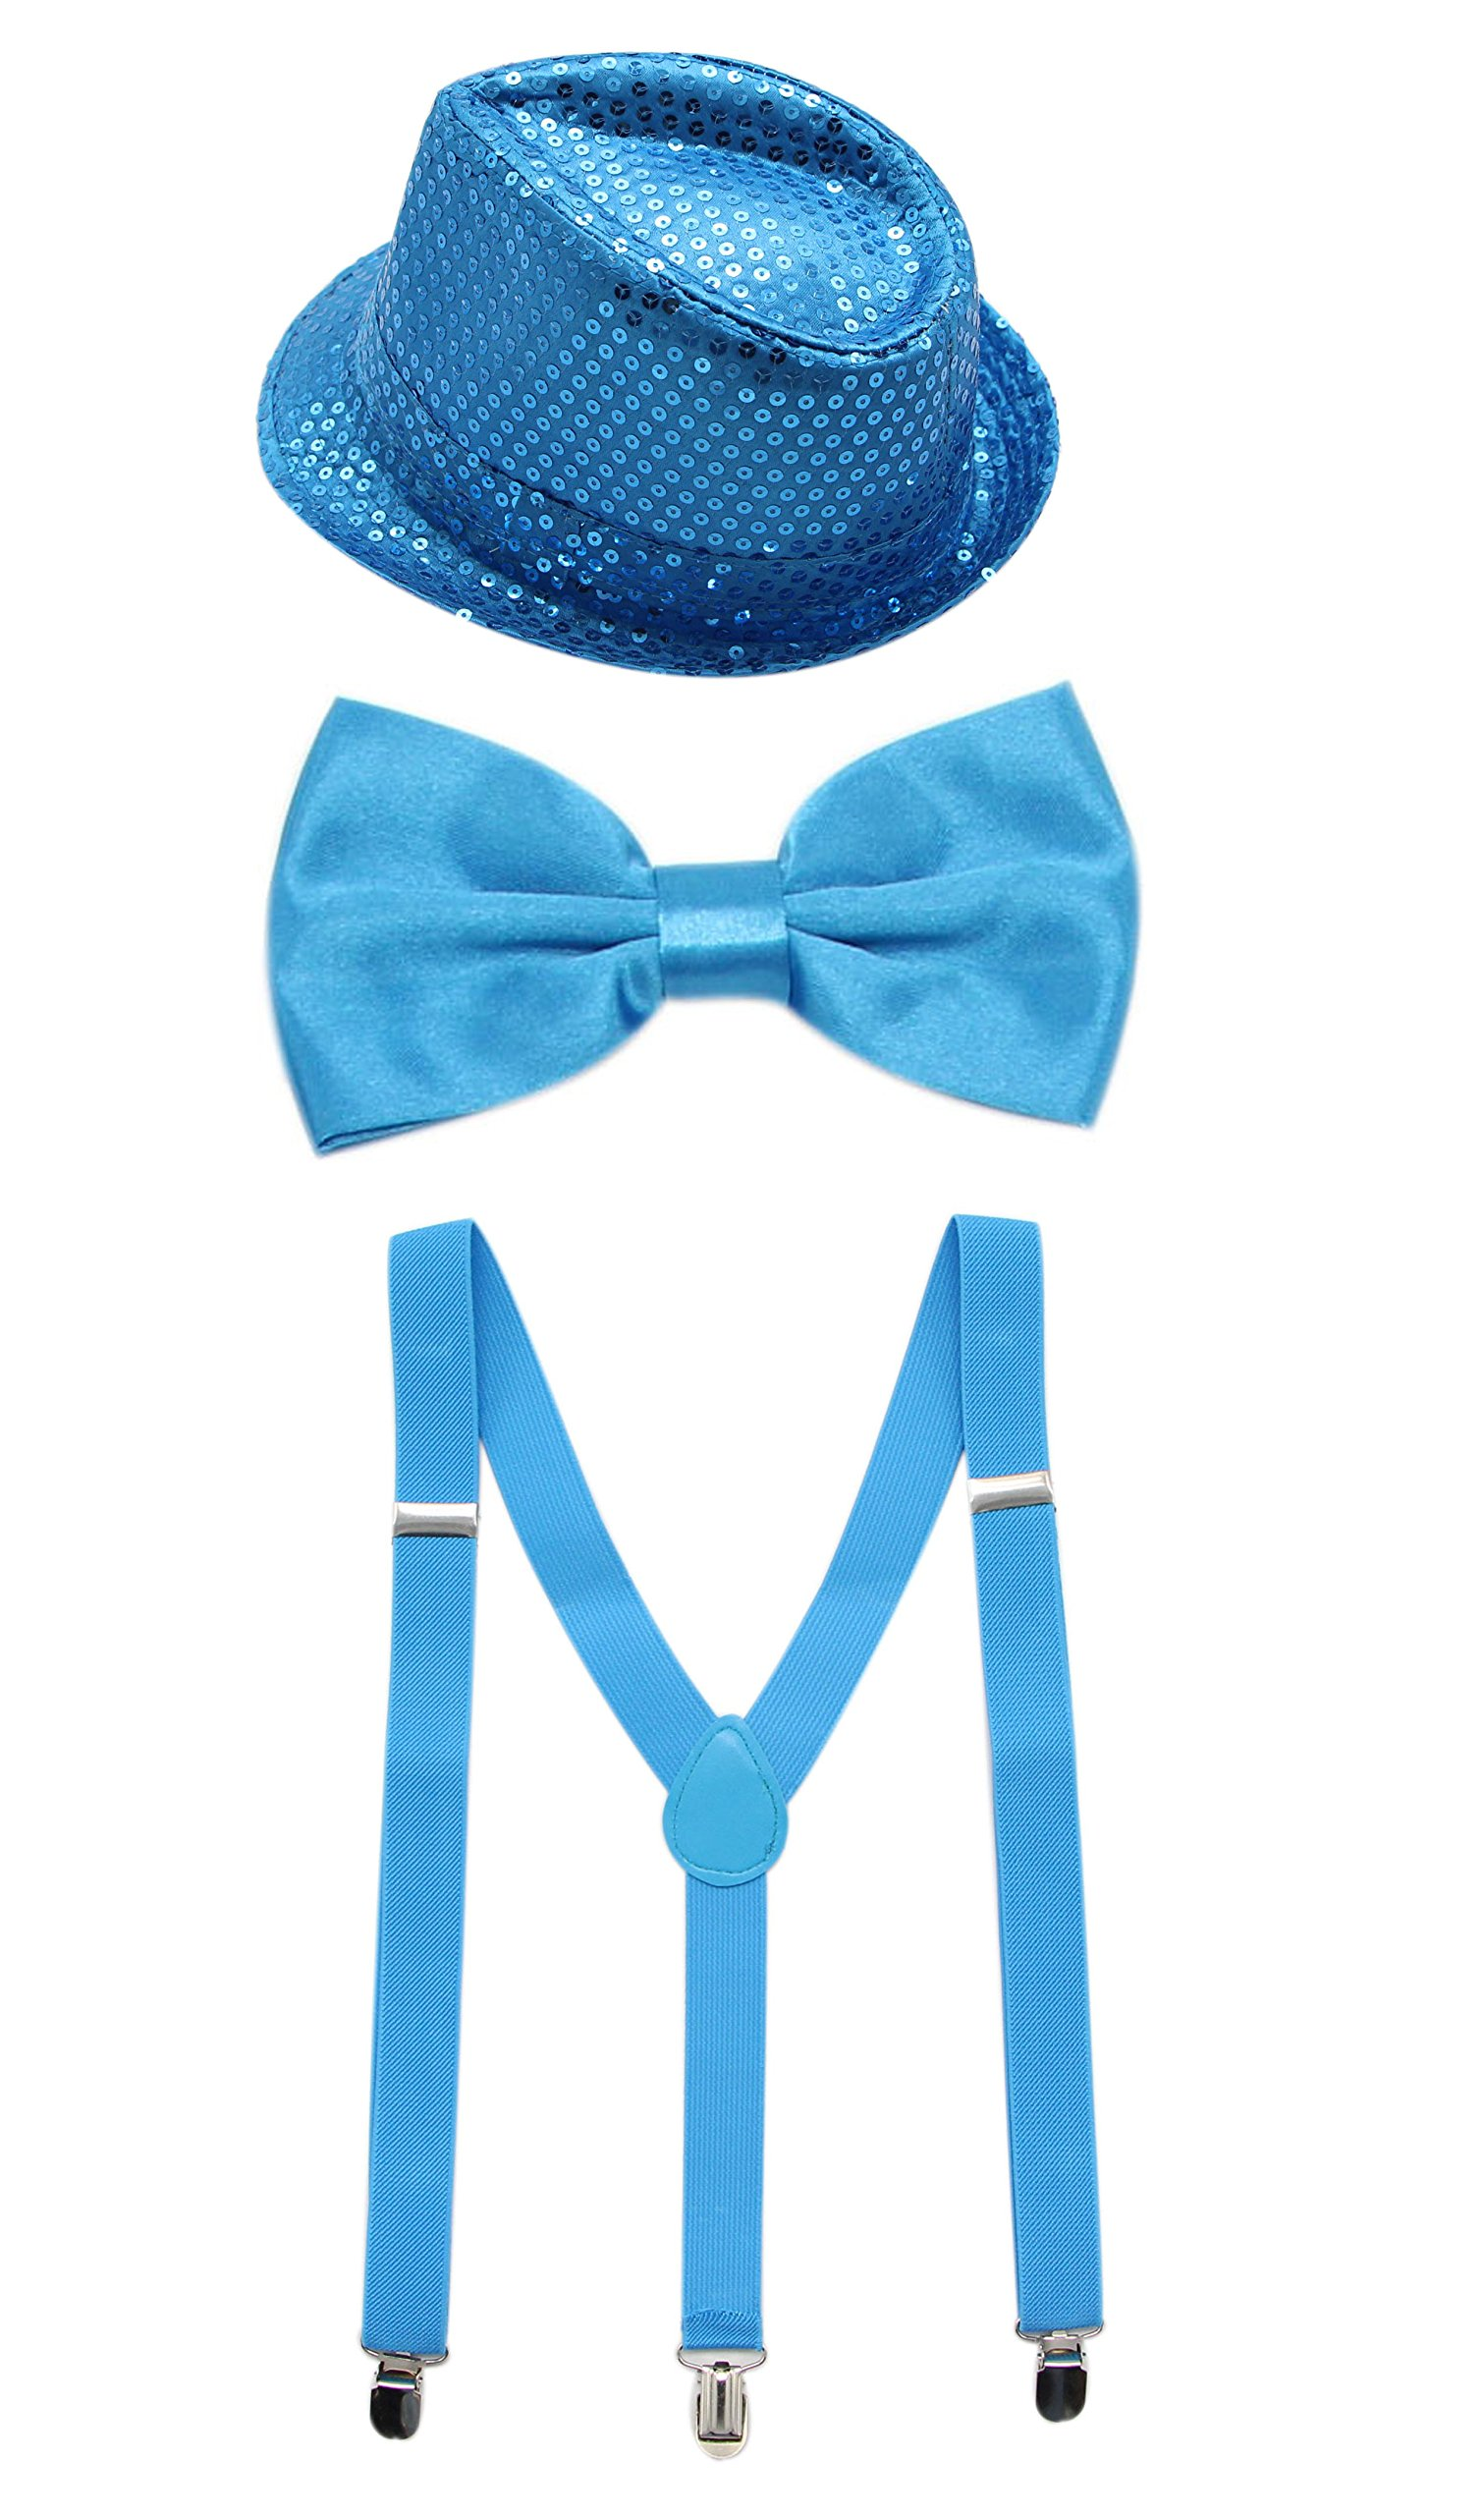 JAIFEI Men's Paillette Fedora Hat With Adjustable Pre-Tied Bow Tie & Suspender For Party, Dress-up (Turquoise)